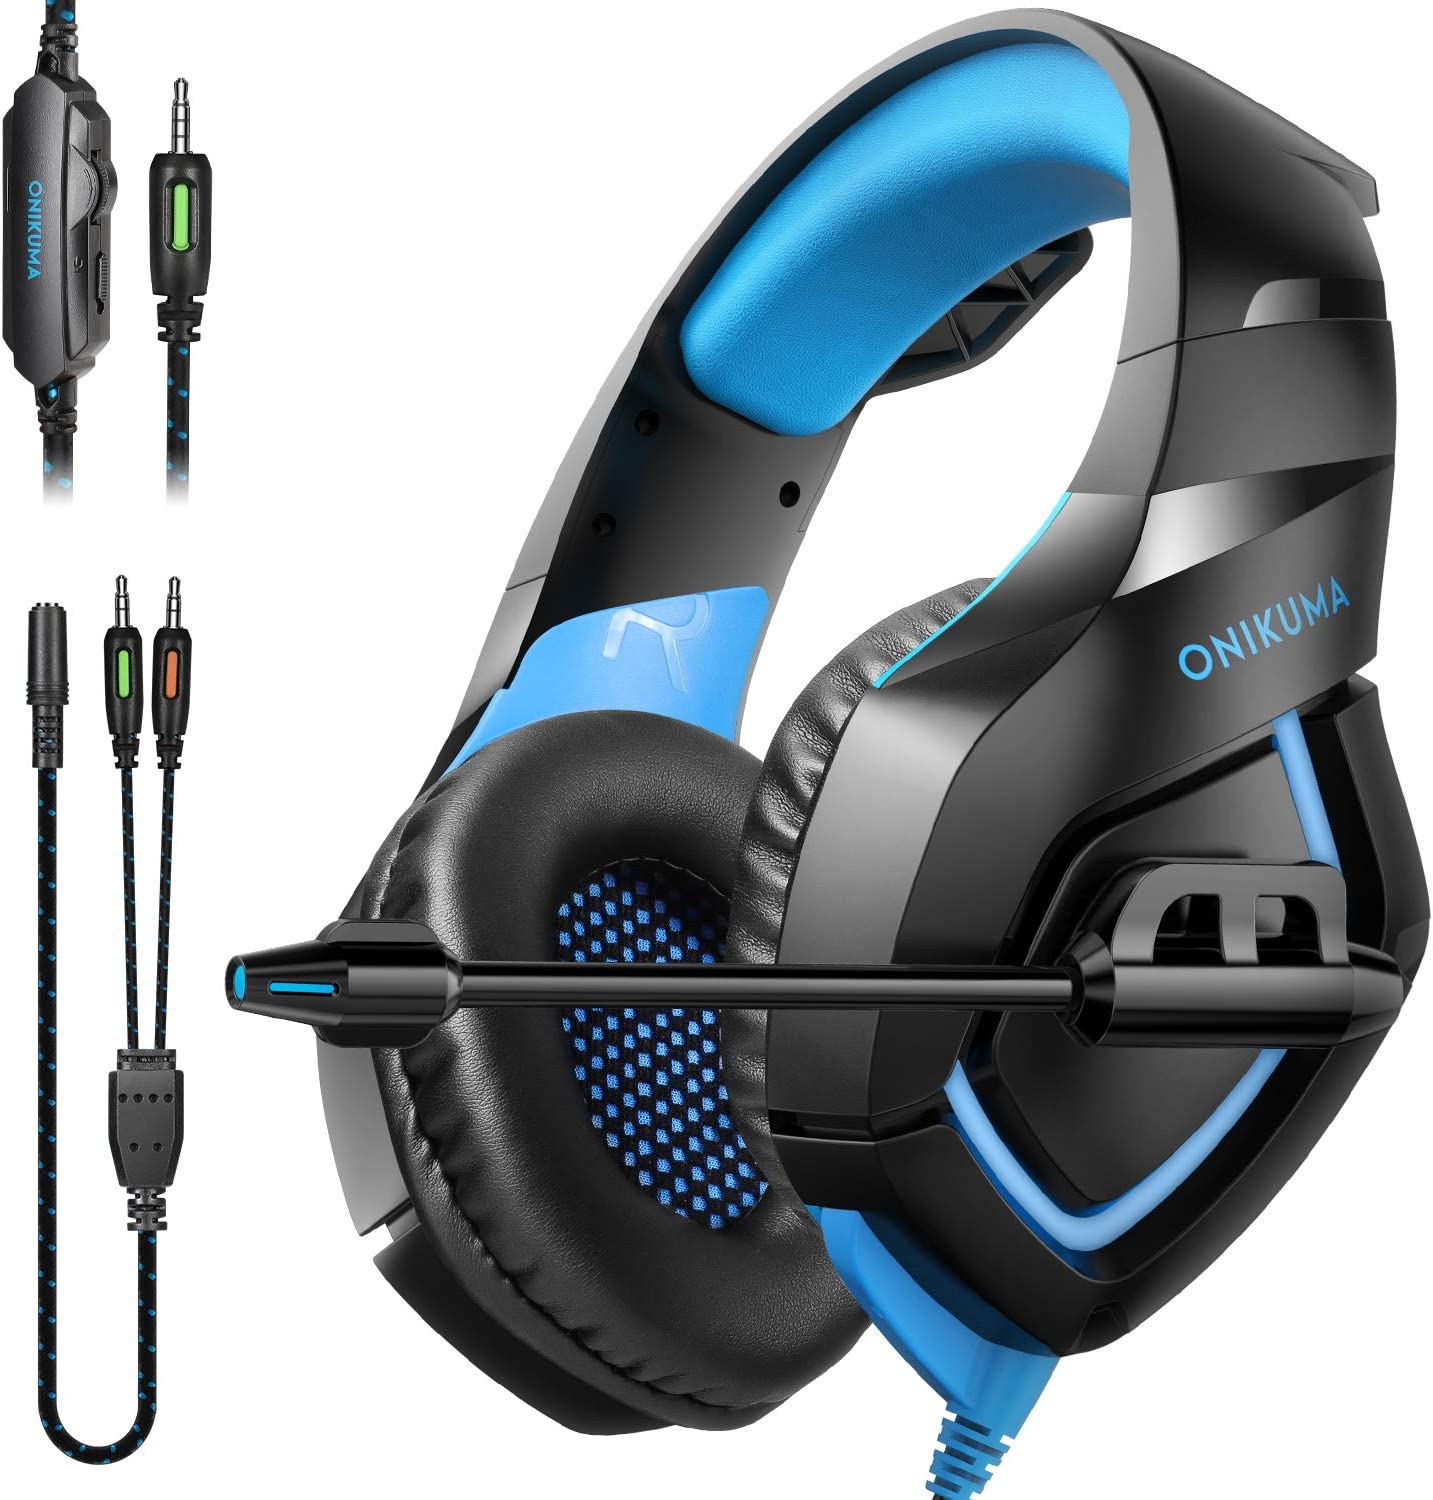 ONIKUMA Gaming Headphones - PS4 Headset Gaming Headset Xbox one Headset Gaming Headphones with Microphone, Soft Memory Earcup for PC, PS4, Mac,Xbox One(Adapter Not Included)